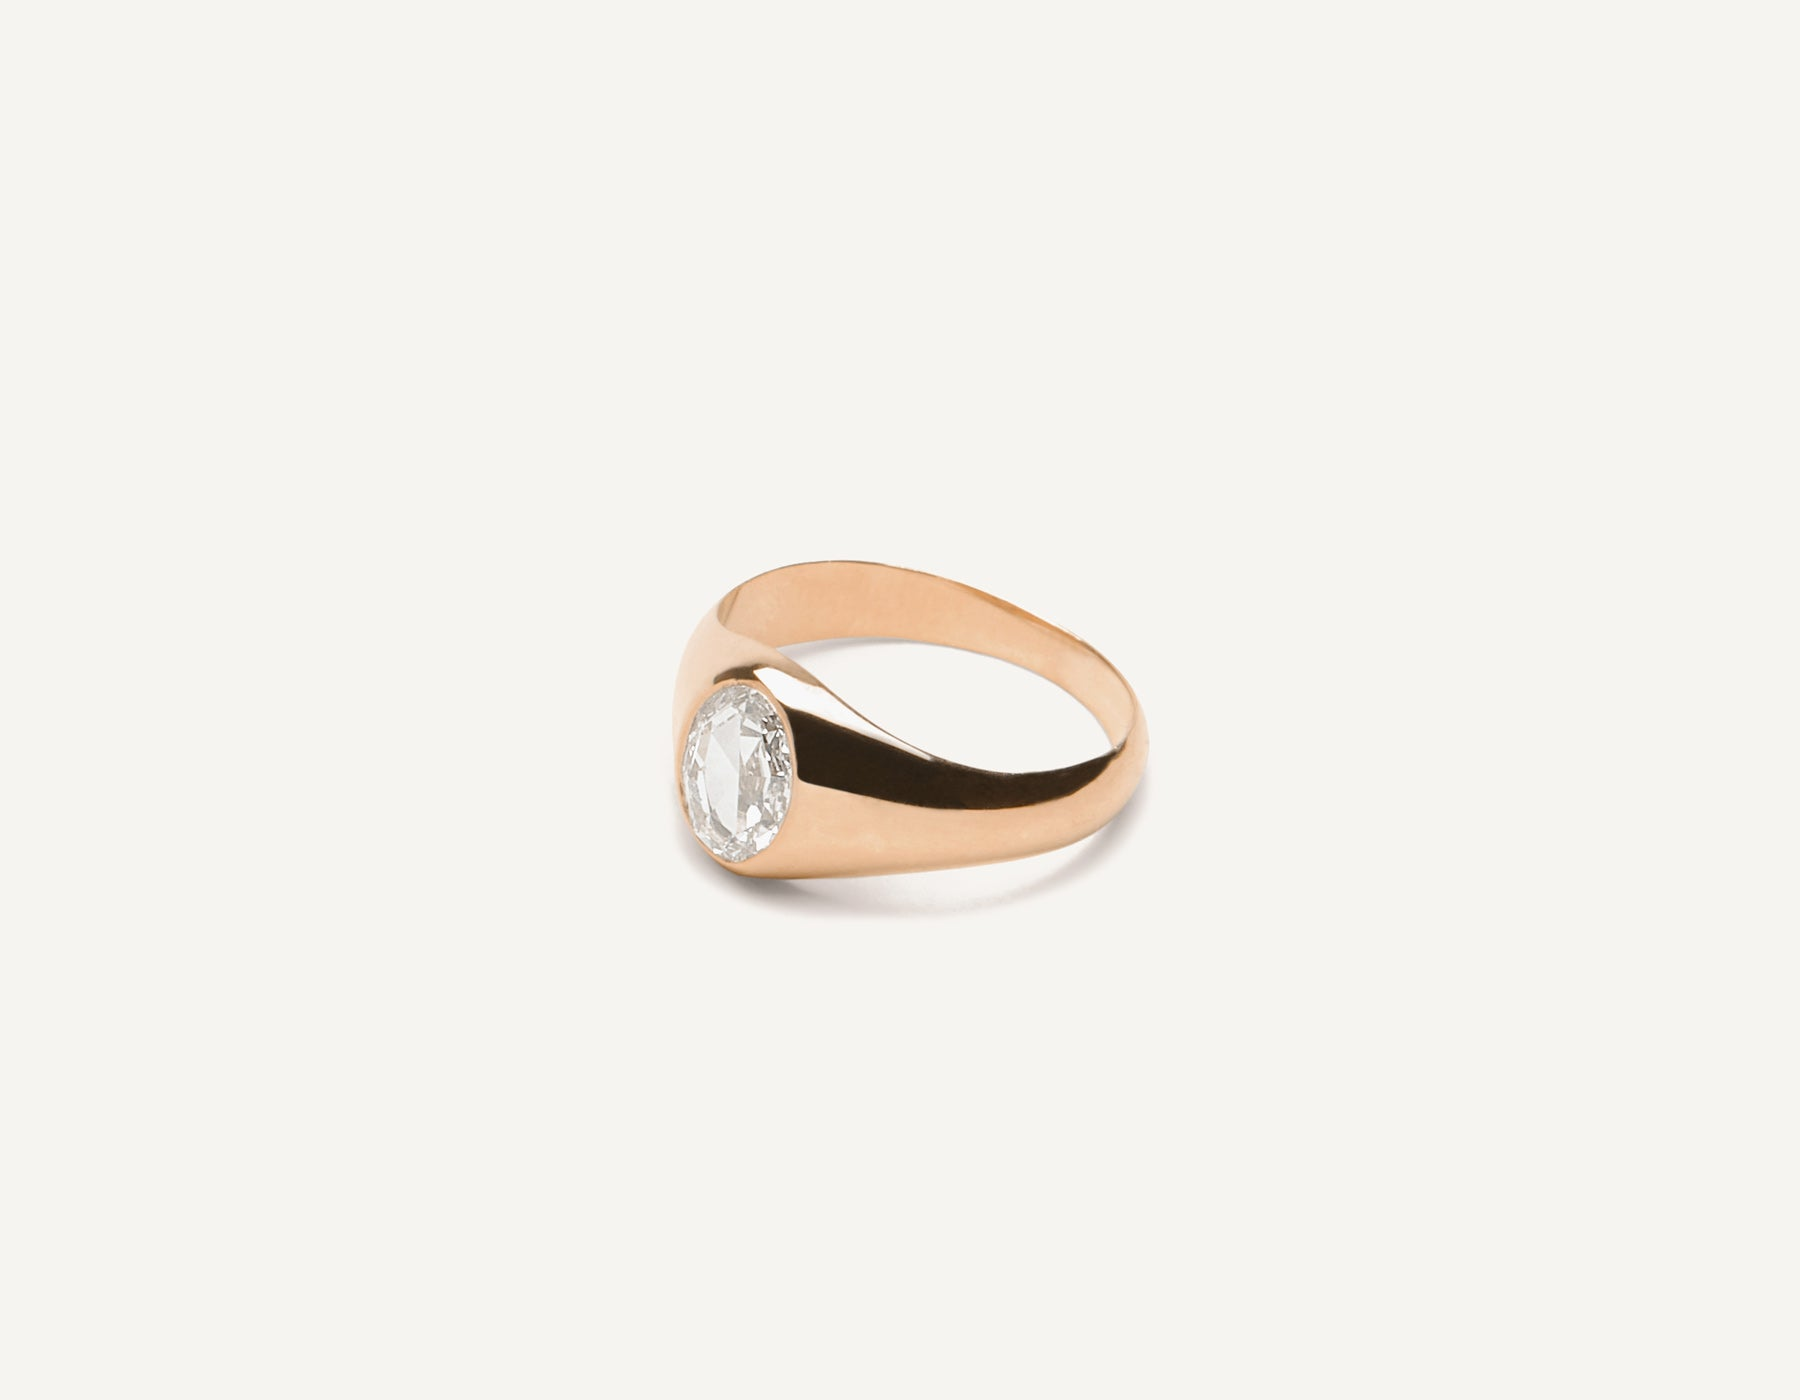 Vrai & Oro 18k solid gold Minimalist vintage Oval Rose Signet ring with .65 carat diamond, 18K Rose Gold